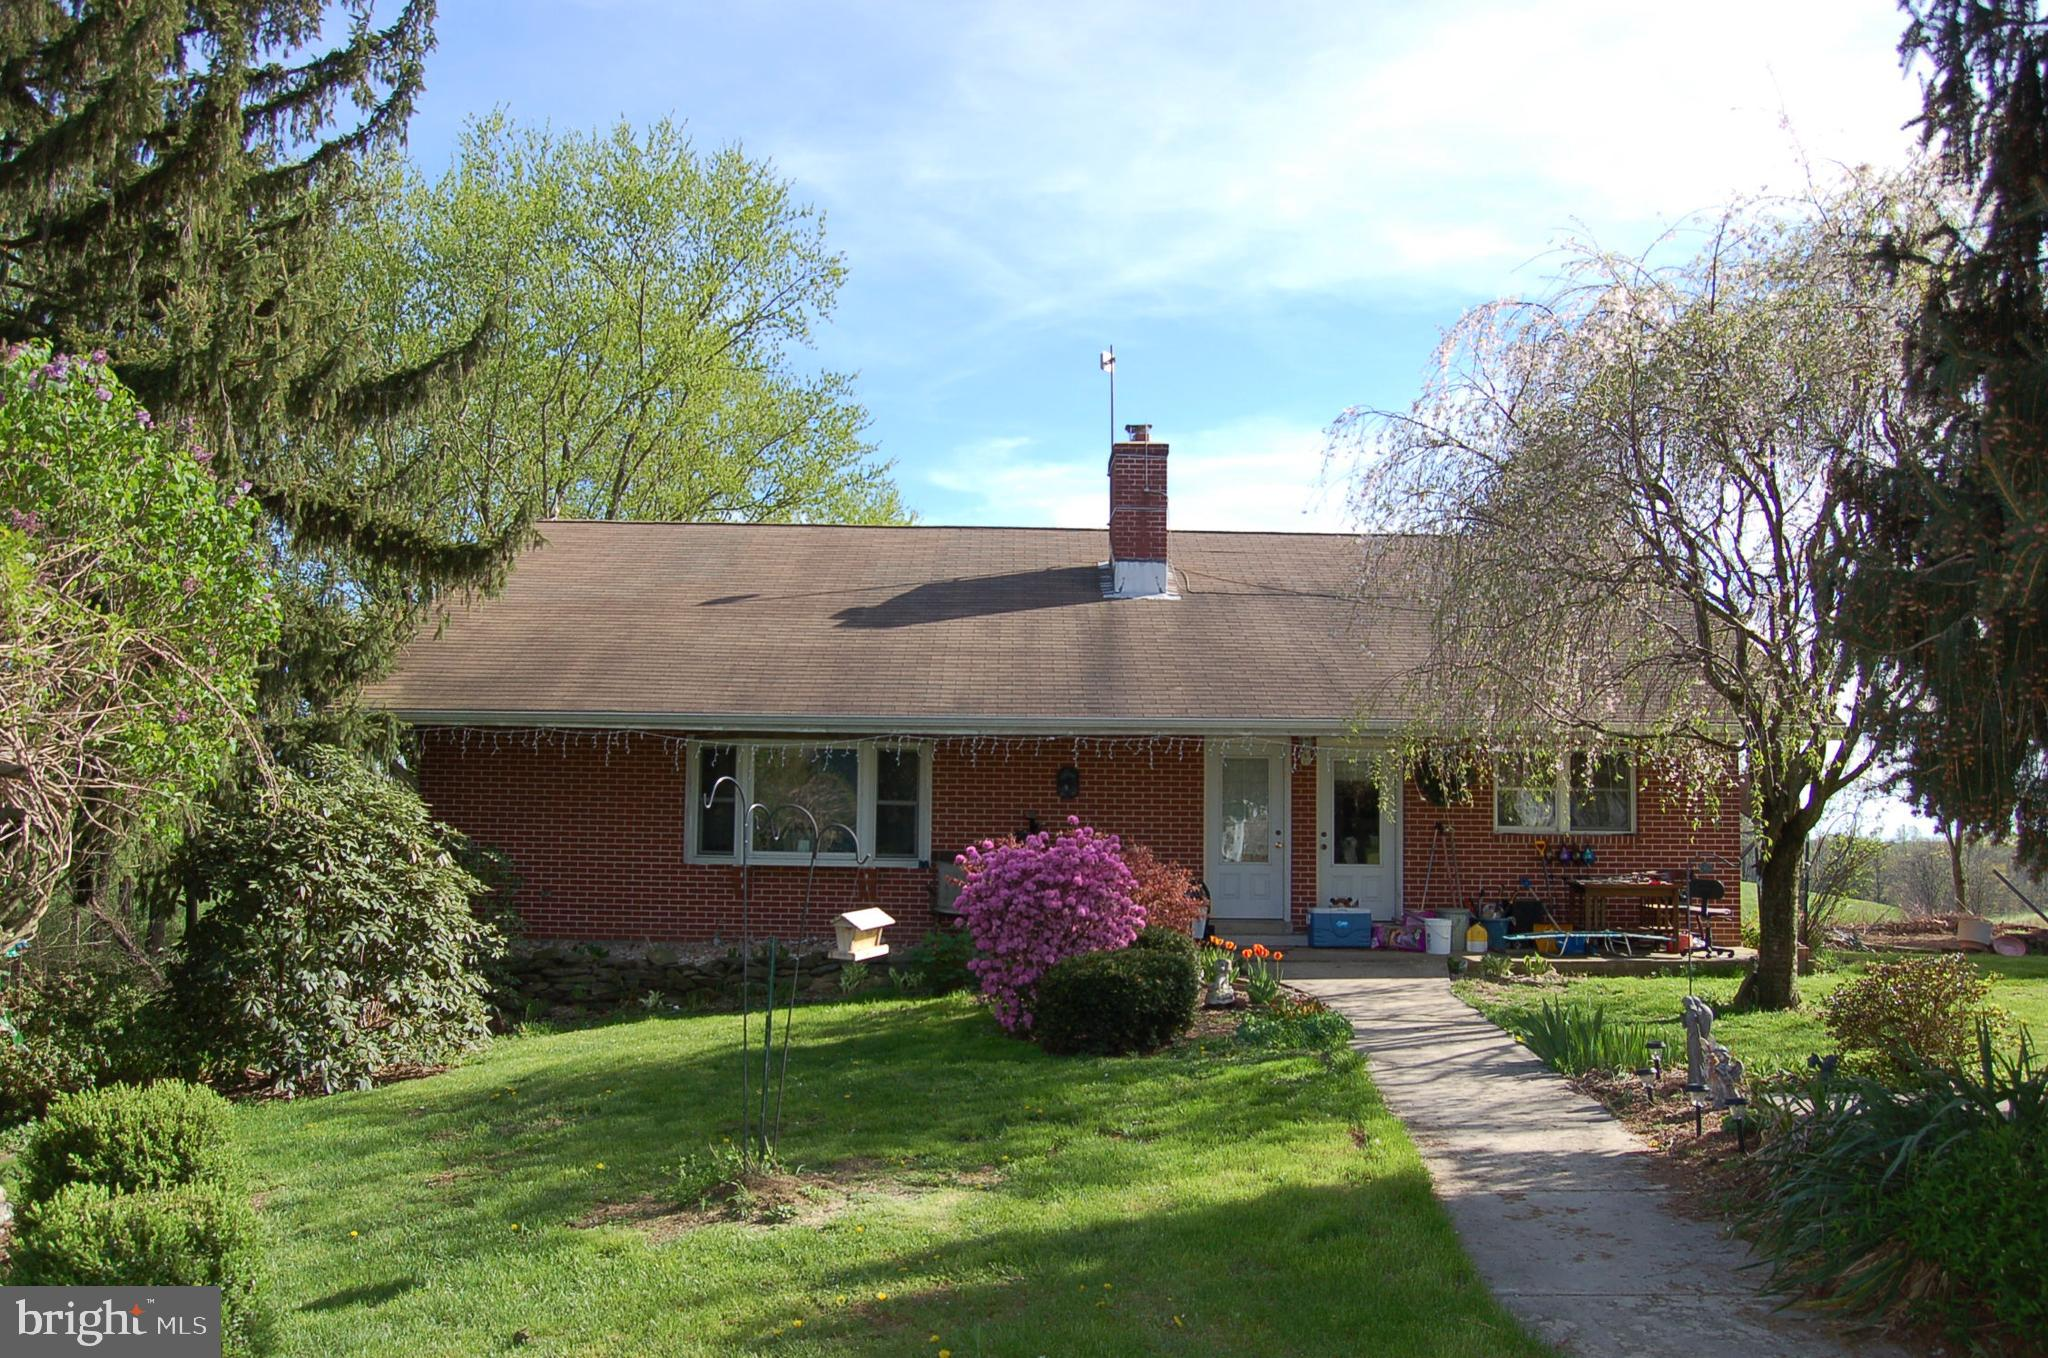 67 LINDLEY MURRAY ROAD, PALMYRA, PA 17078